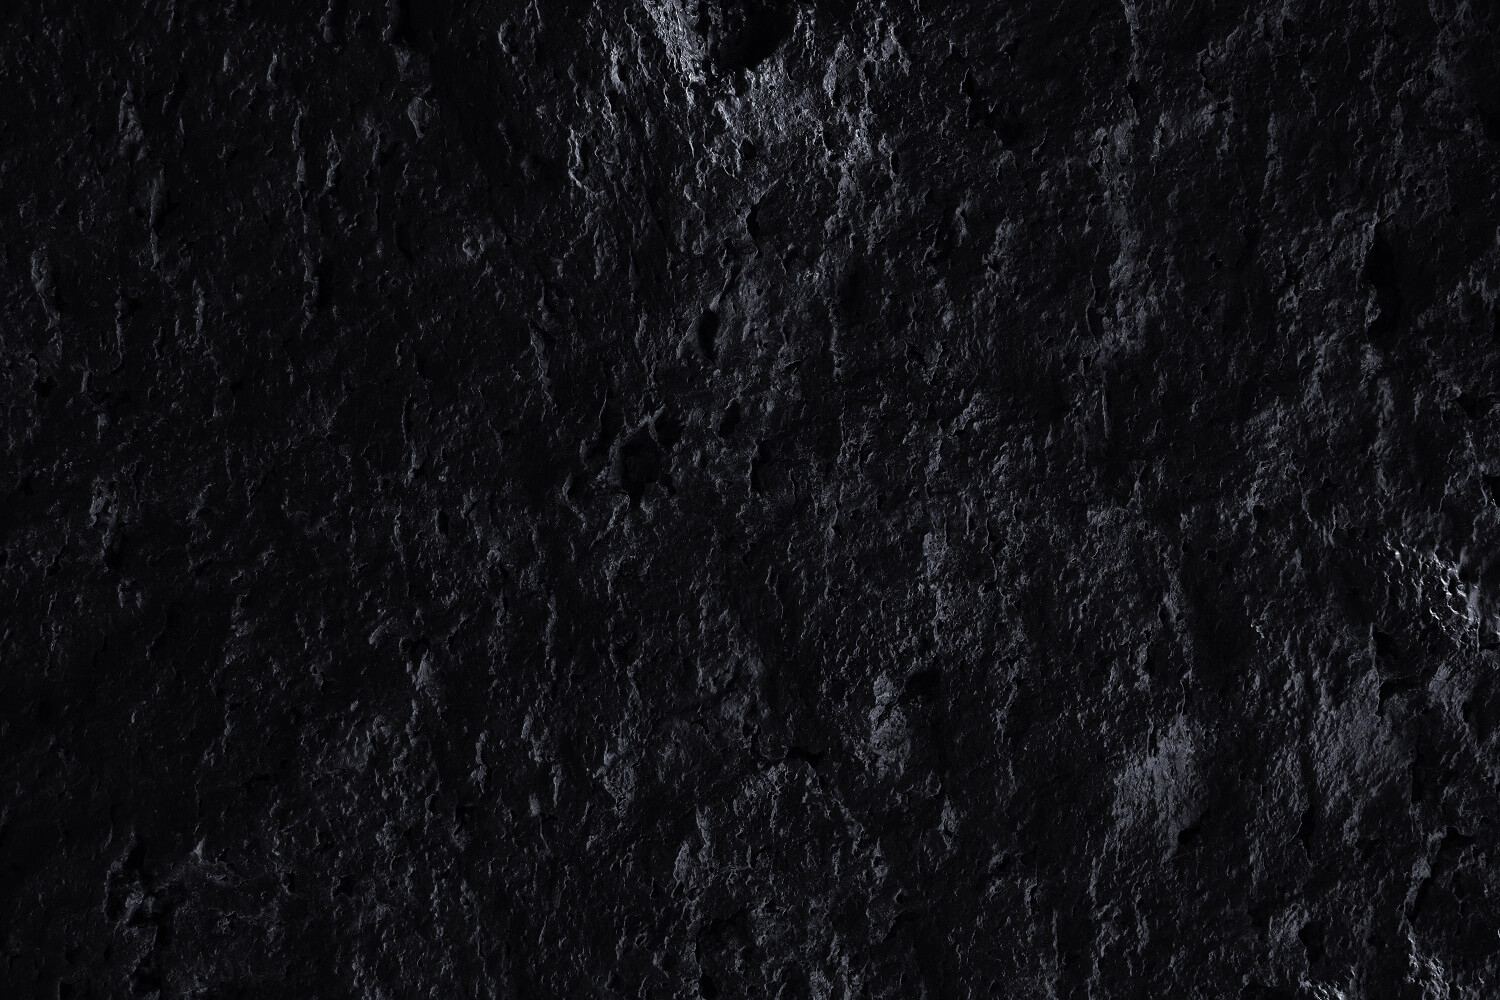 Black and rough rock surface